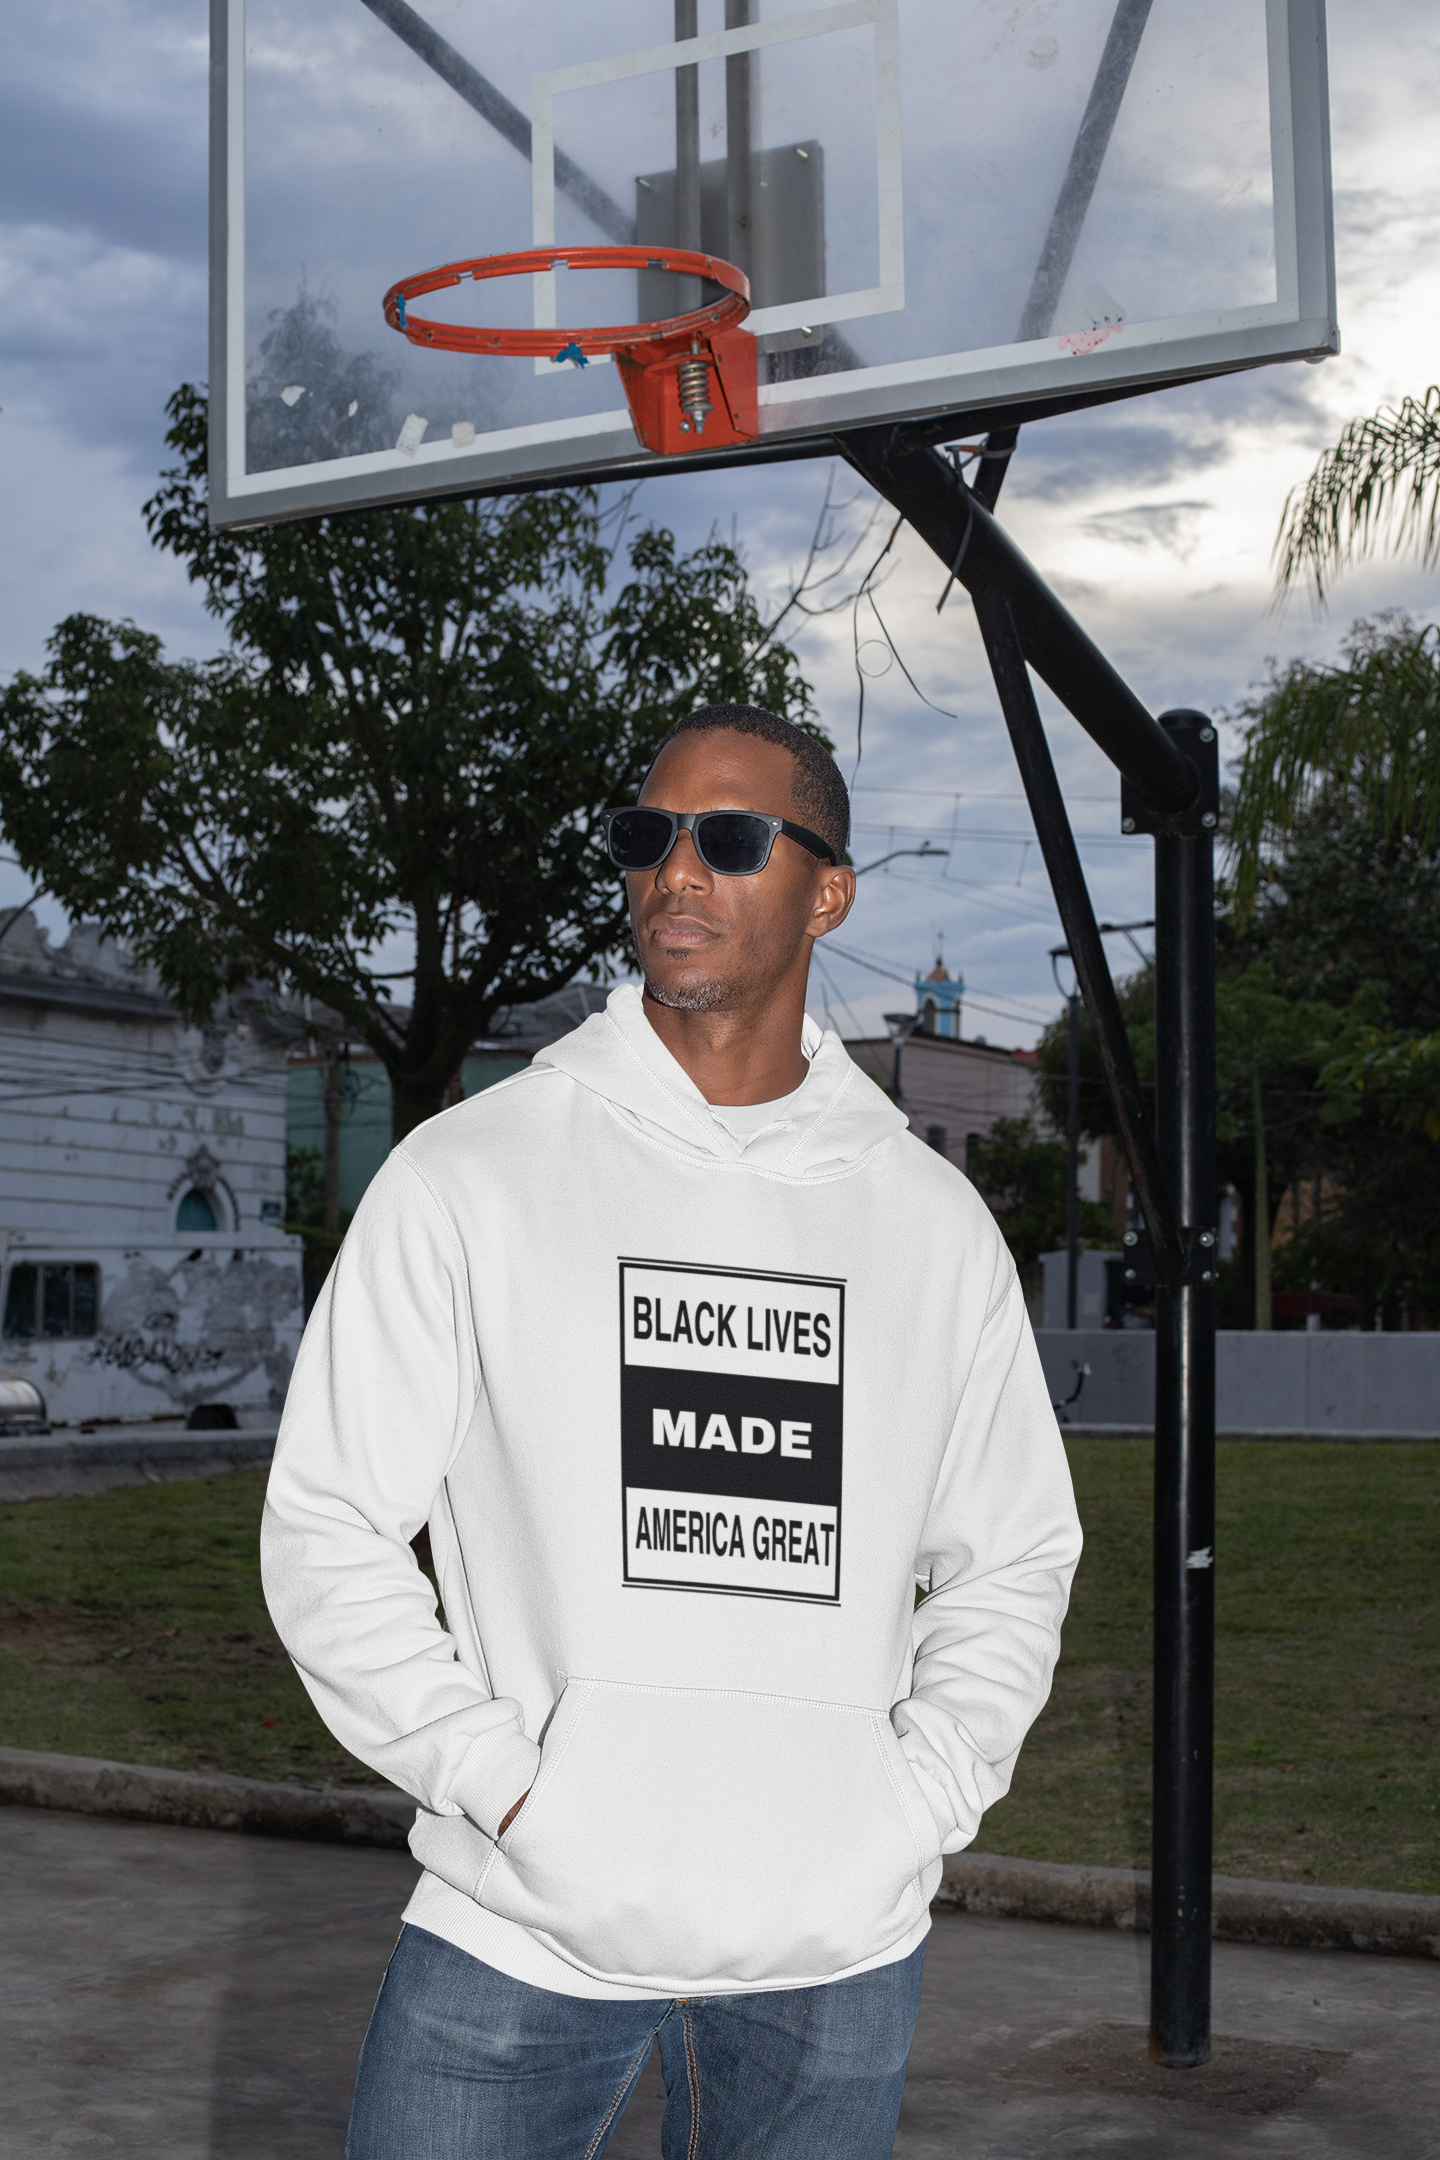 mockup-of-a-fashionable-man-wearing-a-pullover-hoodie-at-a-basketball-court-30460